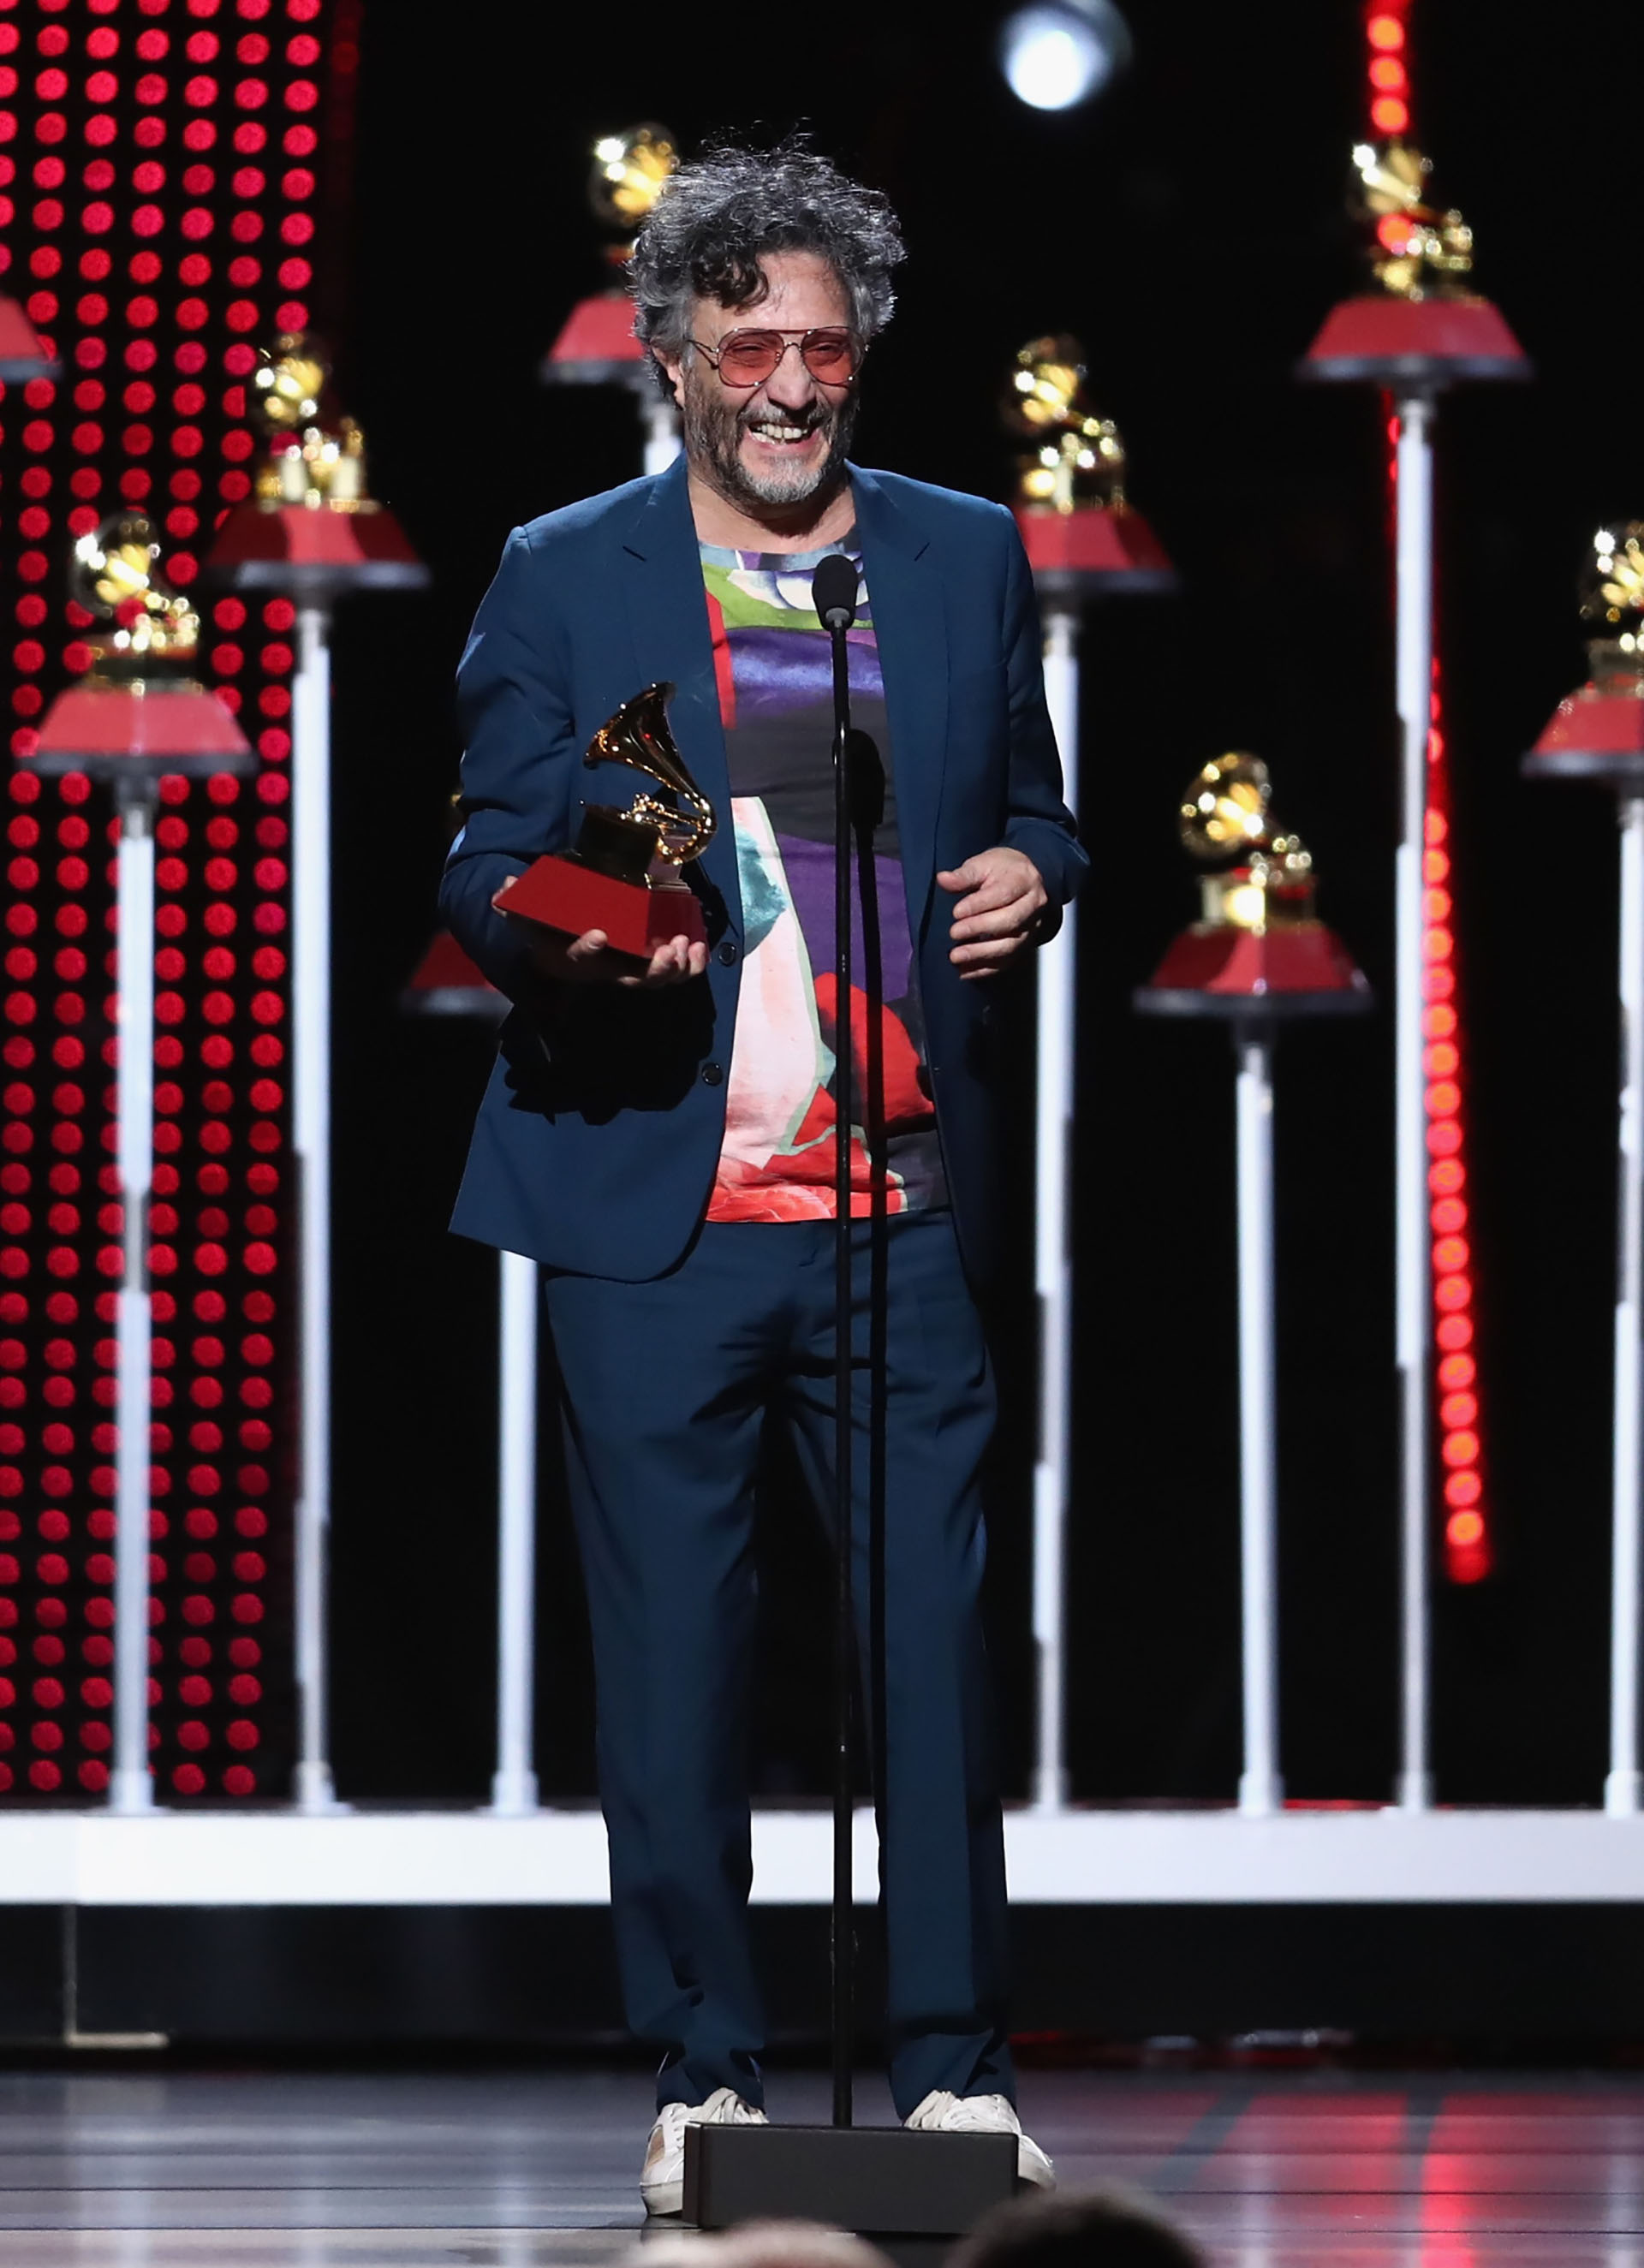 Fito Paez fue distinguido en los premios Grammy Latinos 2018 durante la ceremonia que se realizó en Las Vegas, Nevada (Rich Polk/Getty Images for LARAS/AFP)